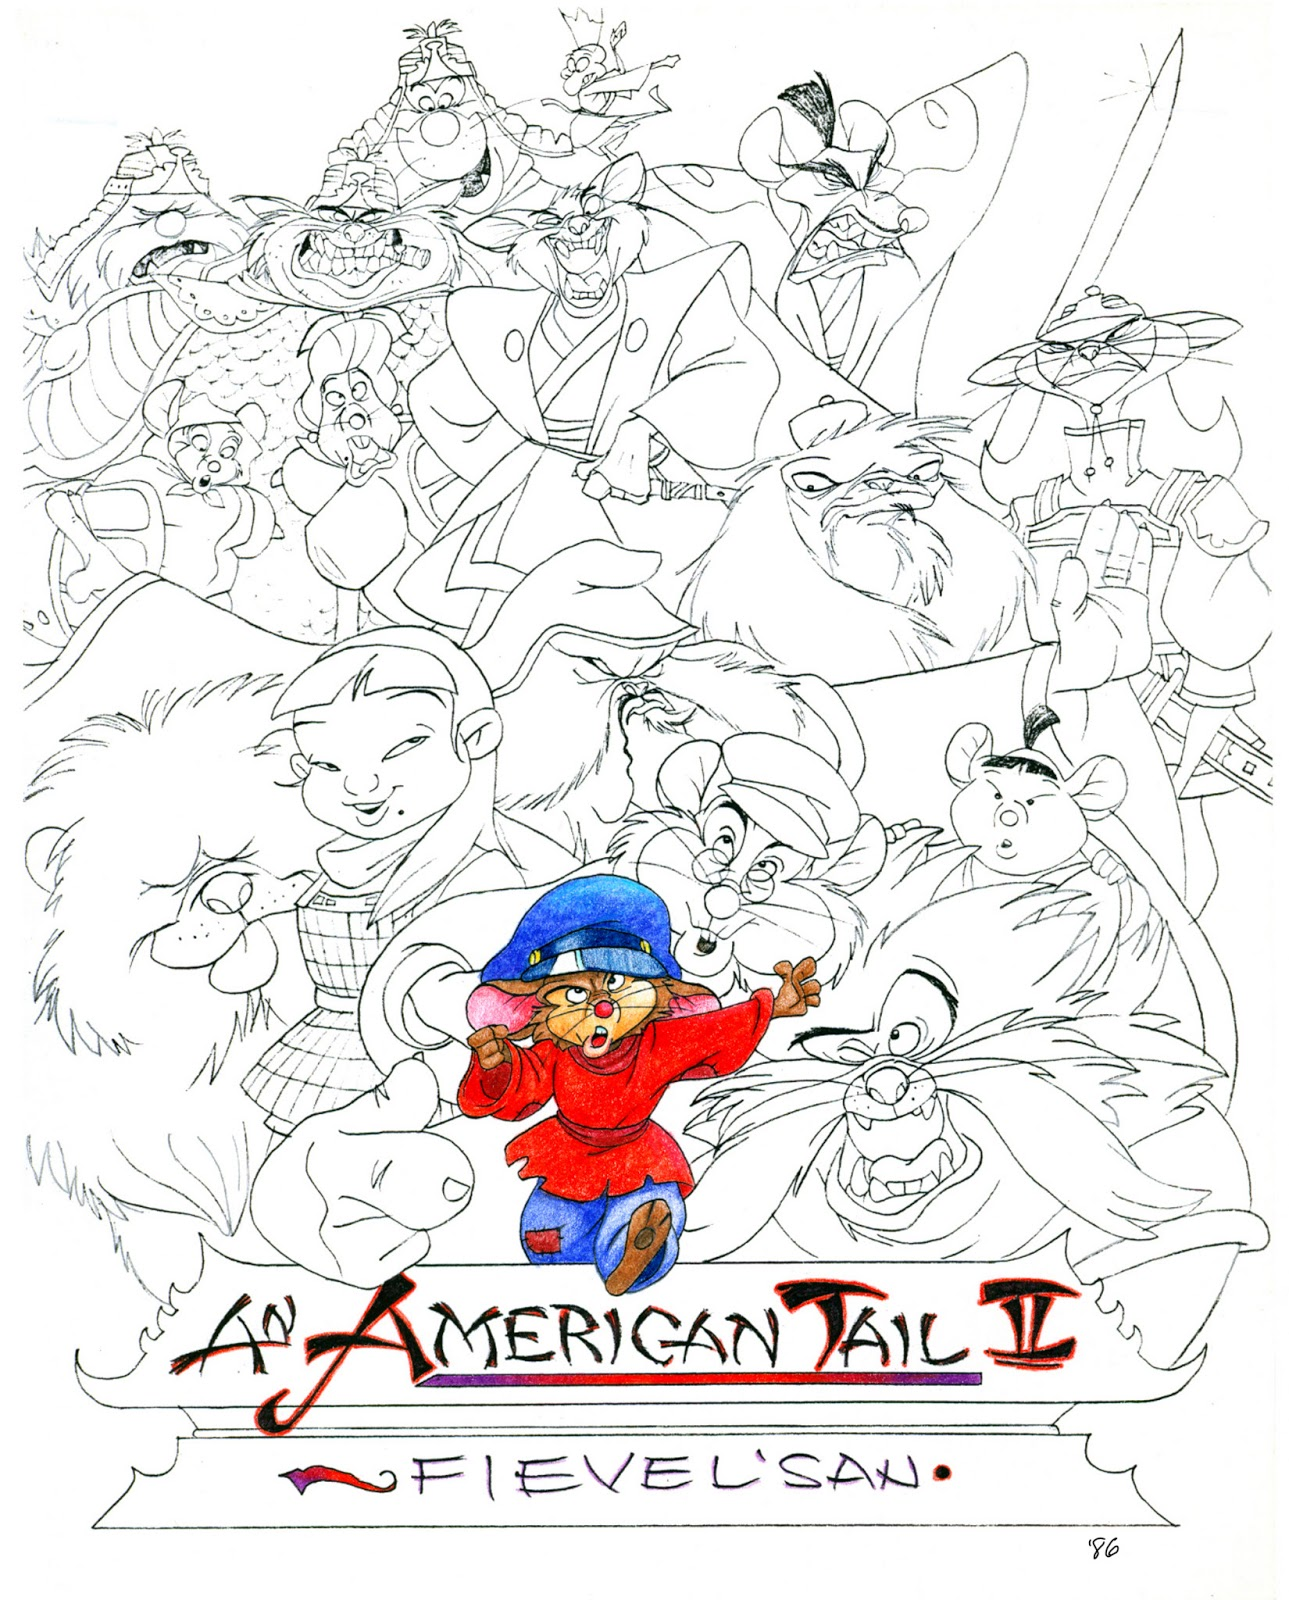 an american tale coloring pages - photo#4